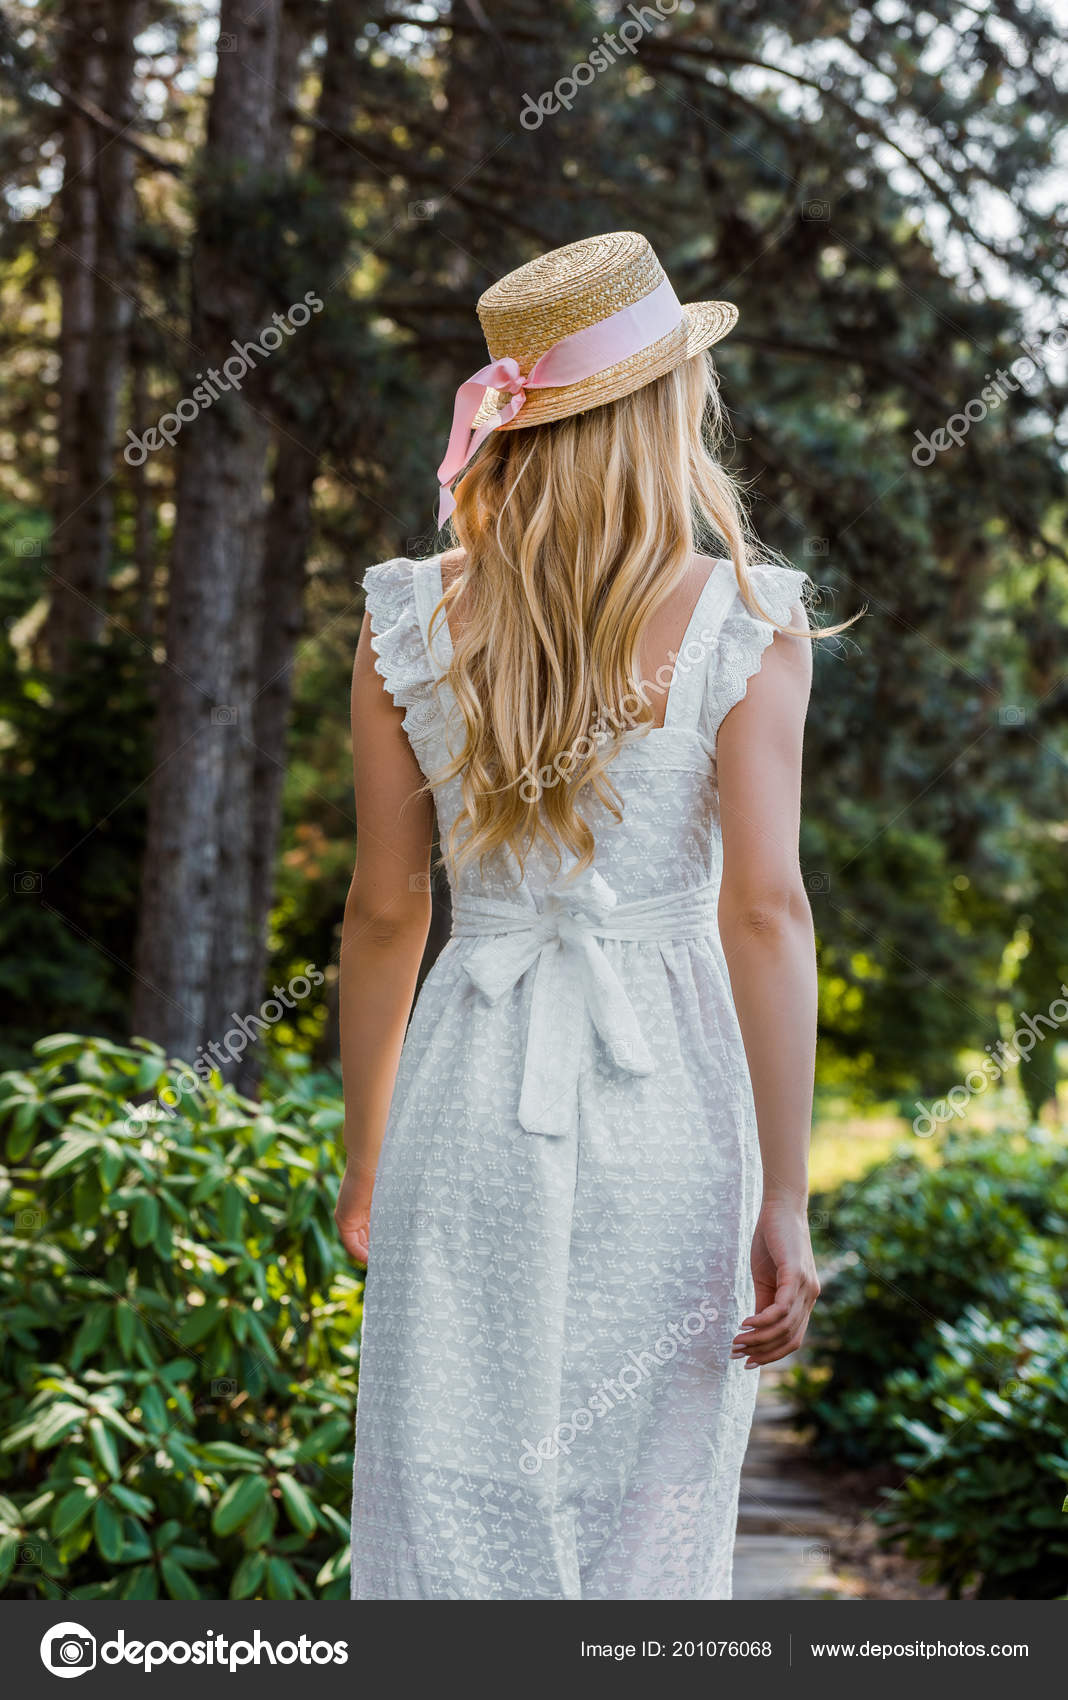 Back View Attractive Girl White Dress Wicker Hat Walking Forest — Stock  Photo 9b1aa64606c2